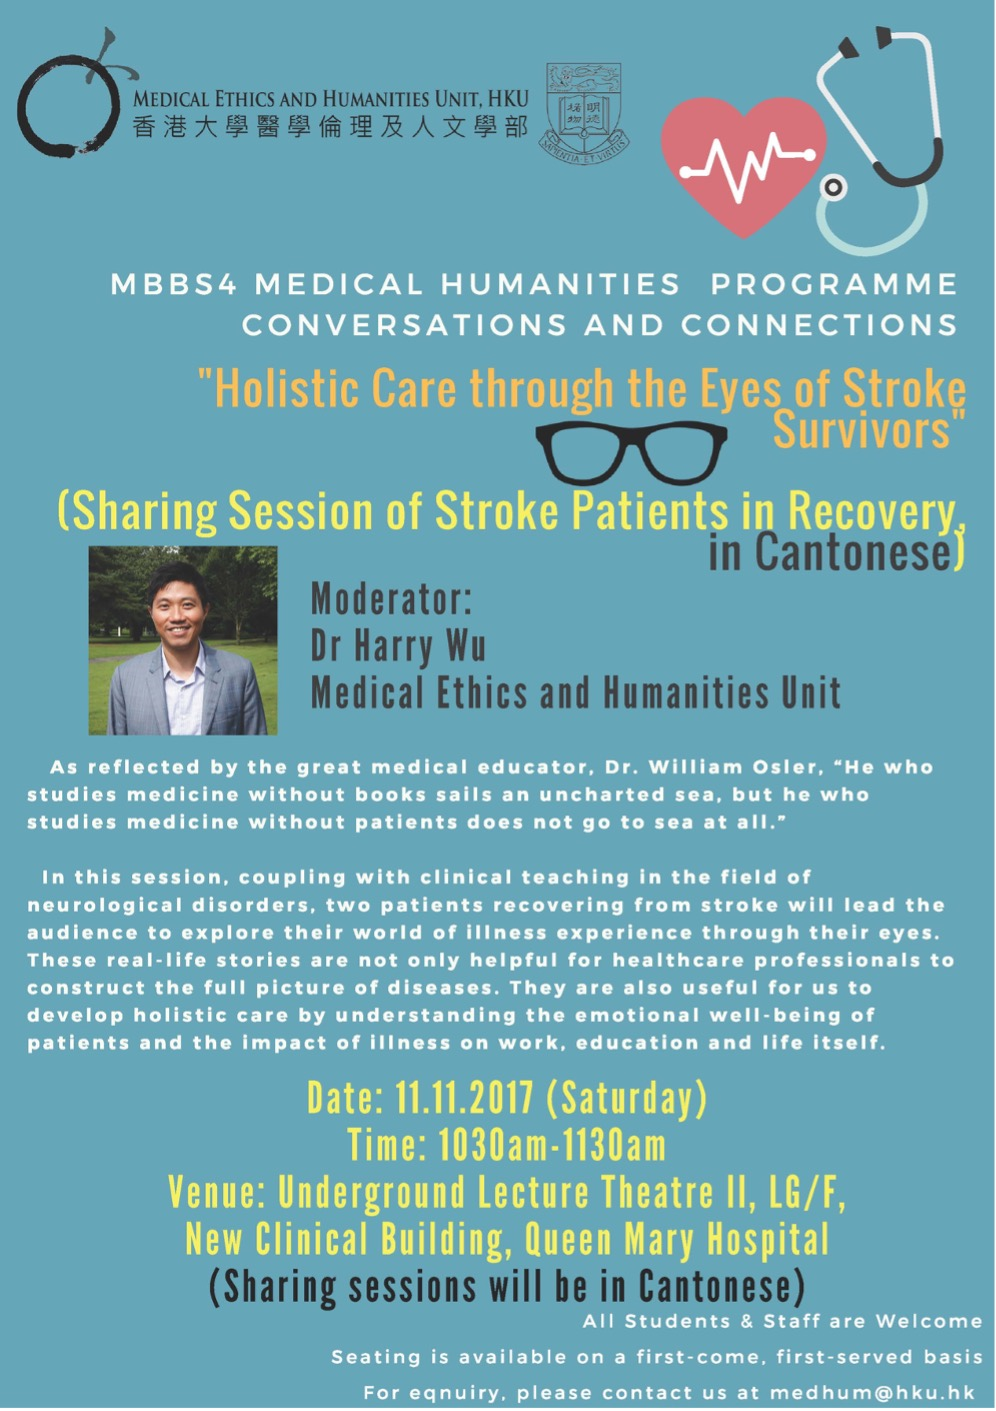 """""""Holistic Care through the Eyes of Stroke Survivors"""" (Sharing Session of Stroke Patients in Recovery in Cantonese)"""